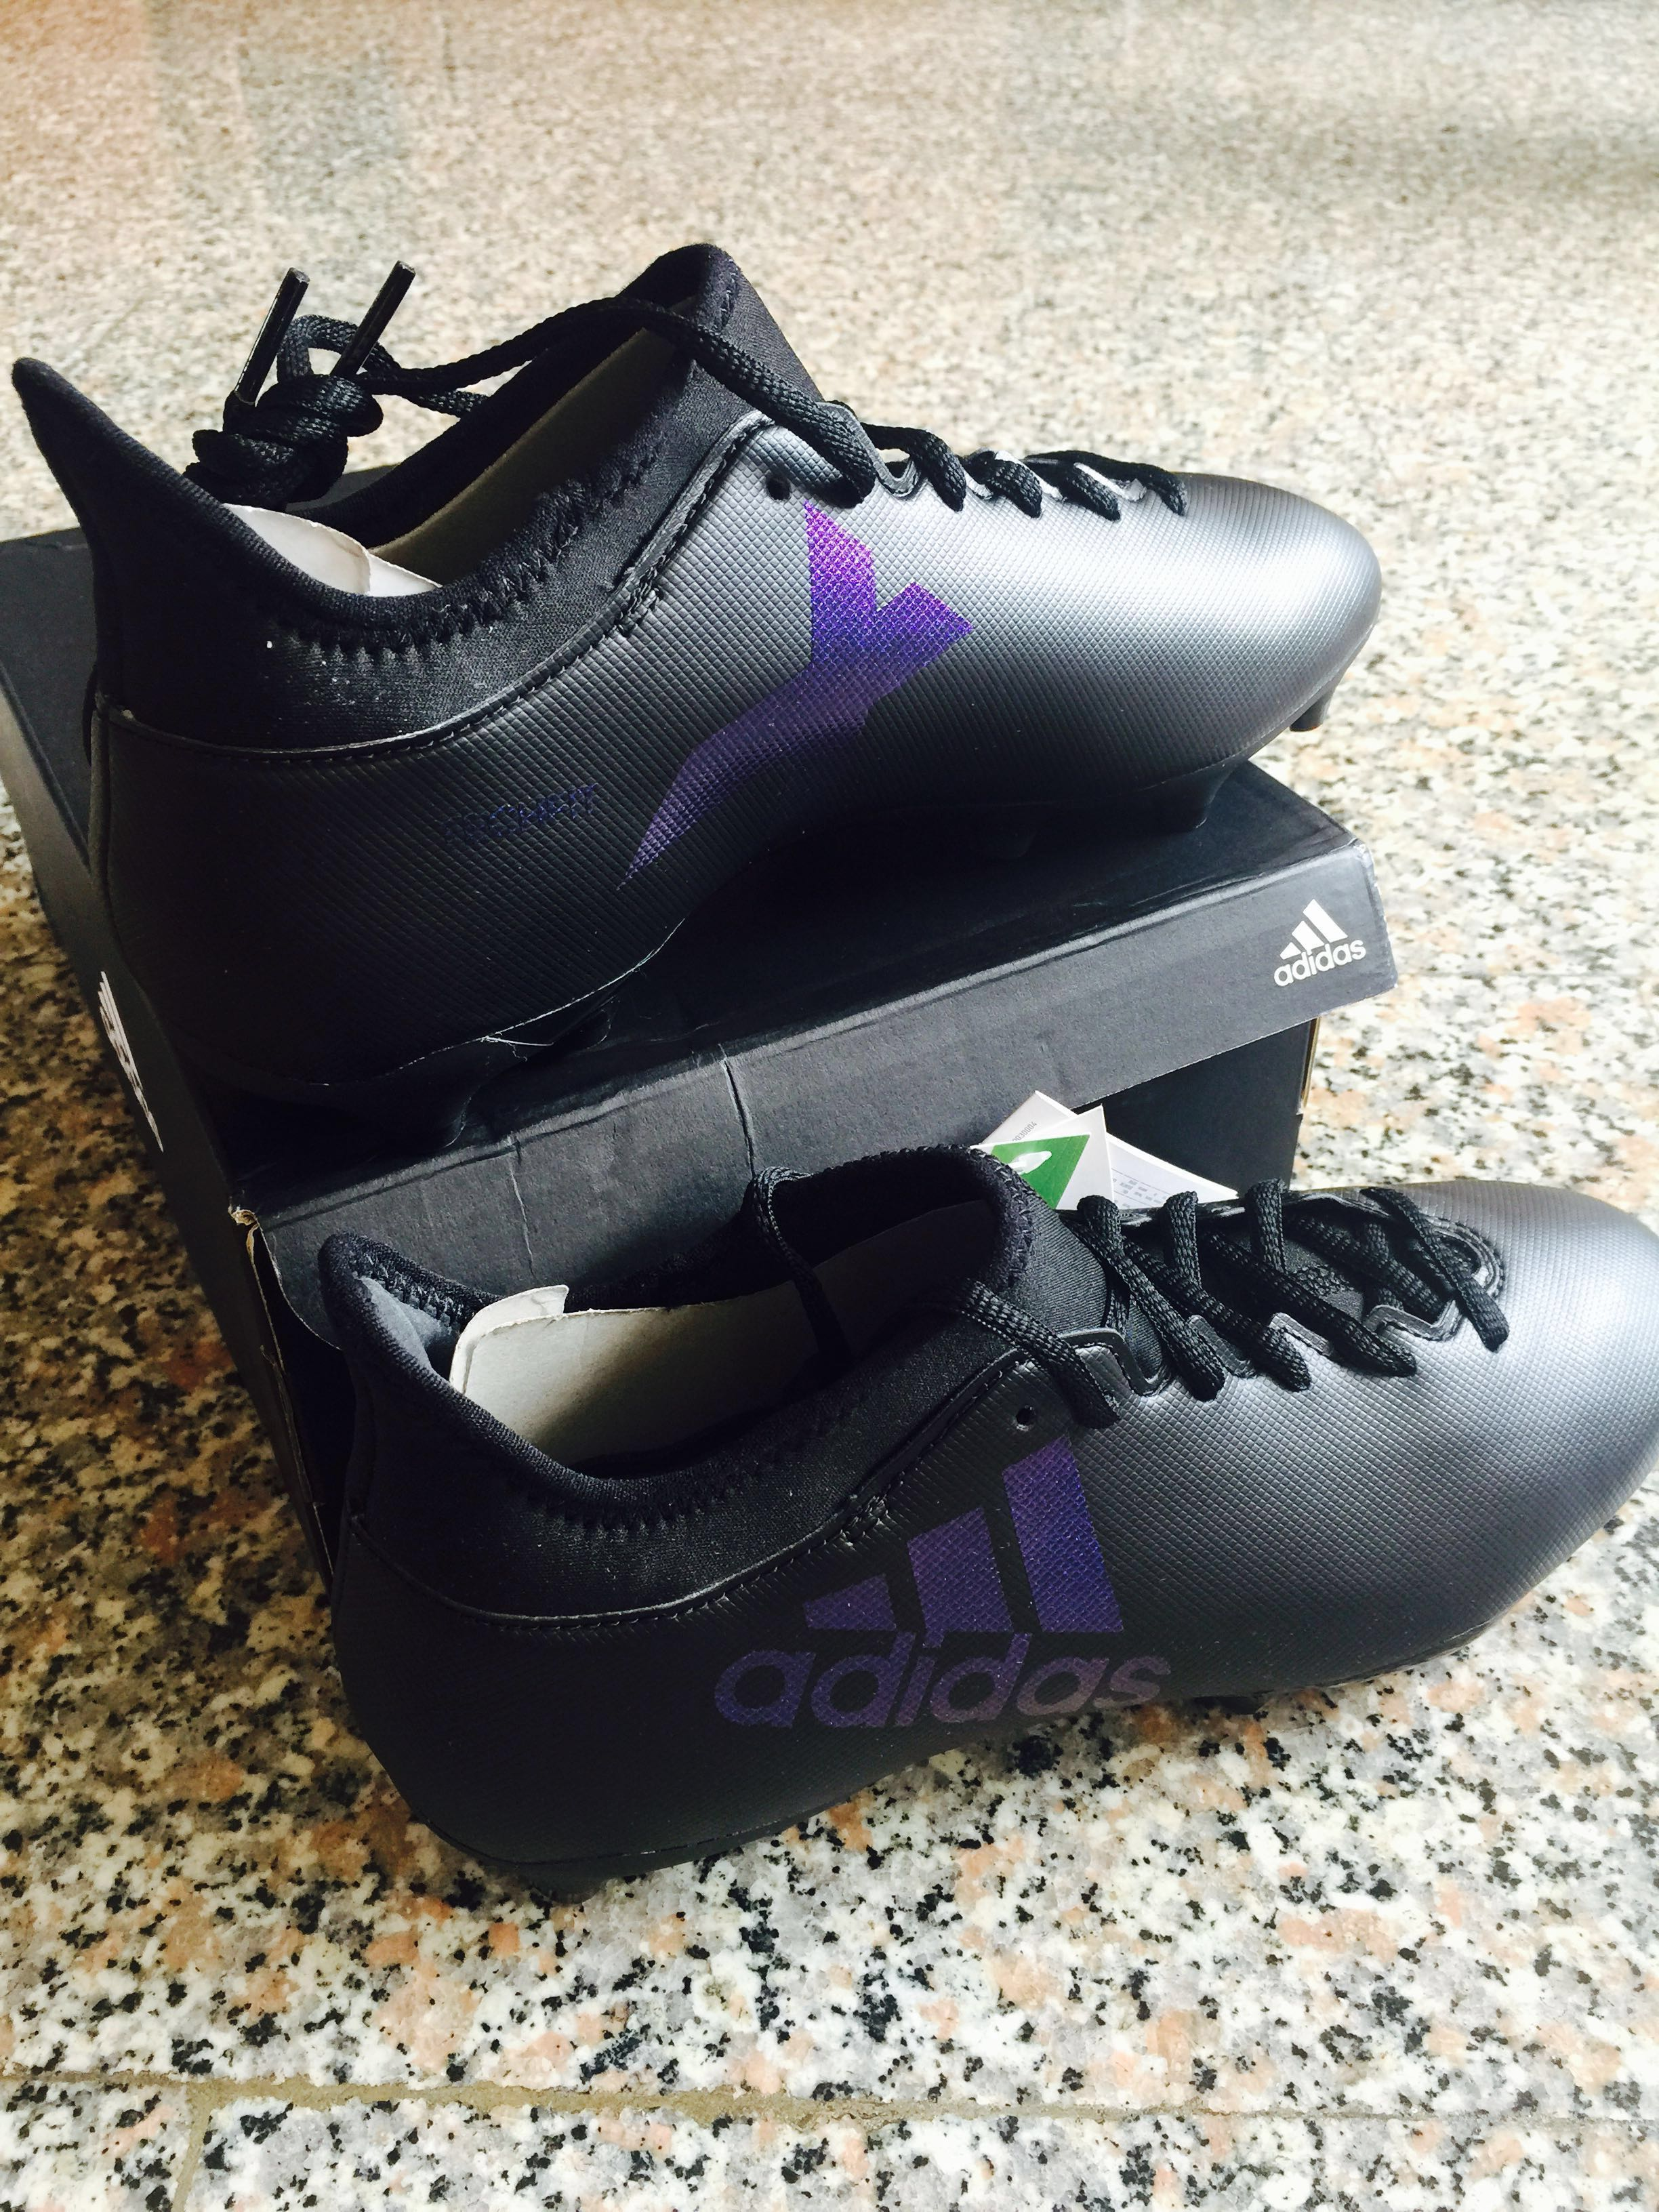 2a2b2c69646 BRAND NEW Adidas soccer boots